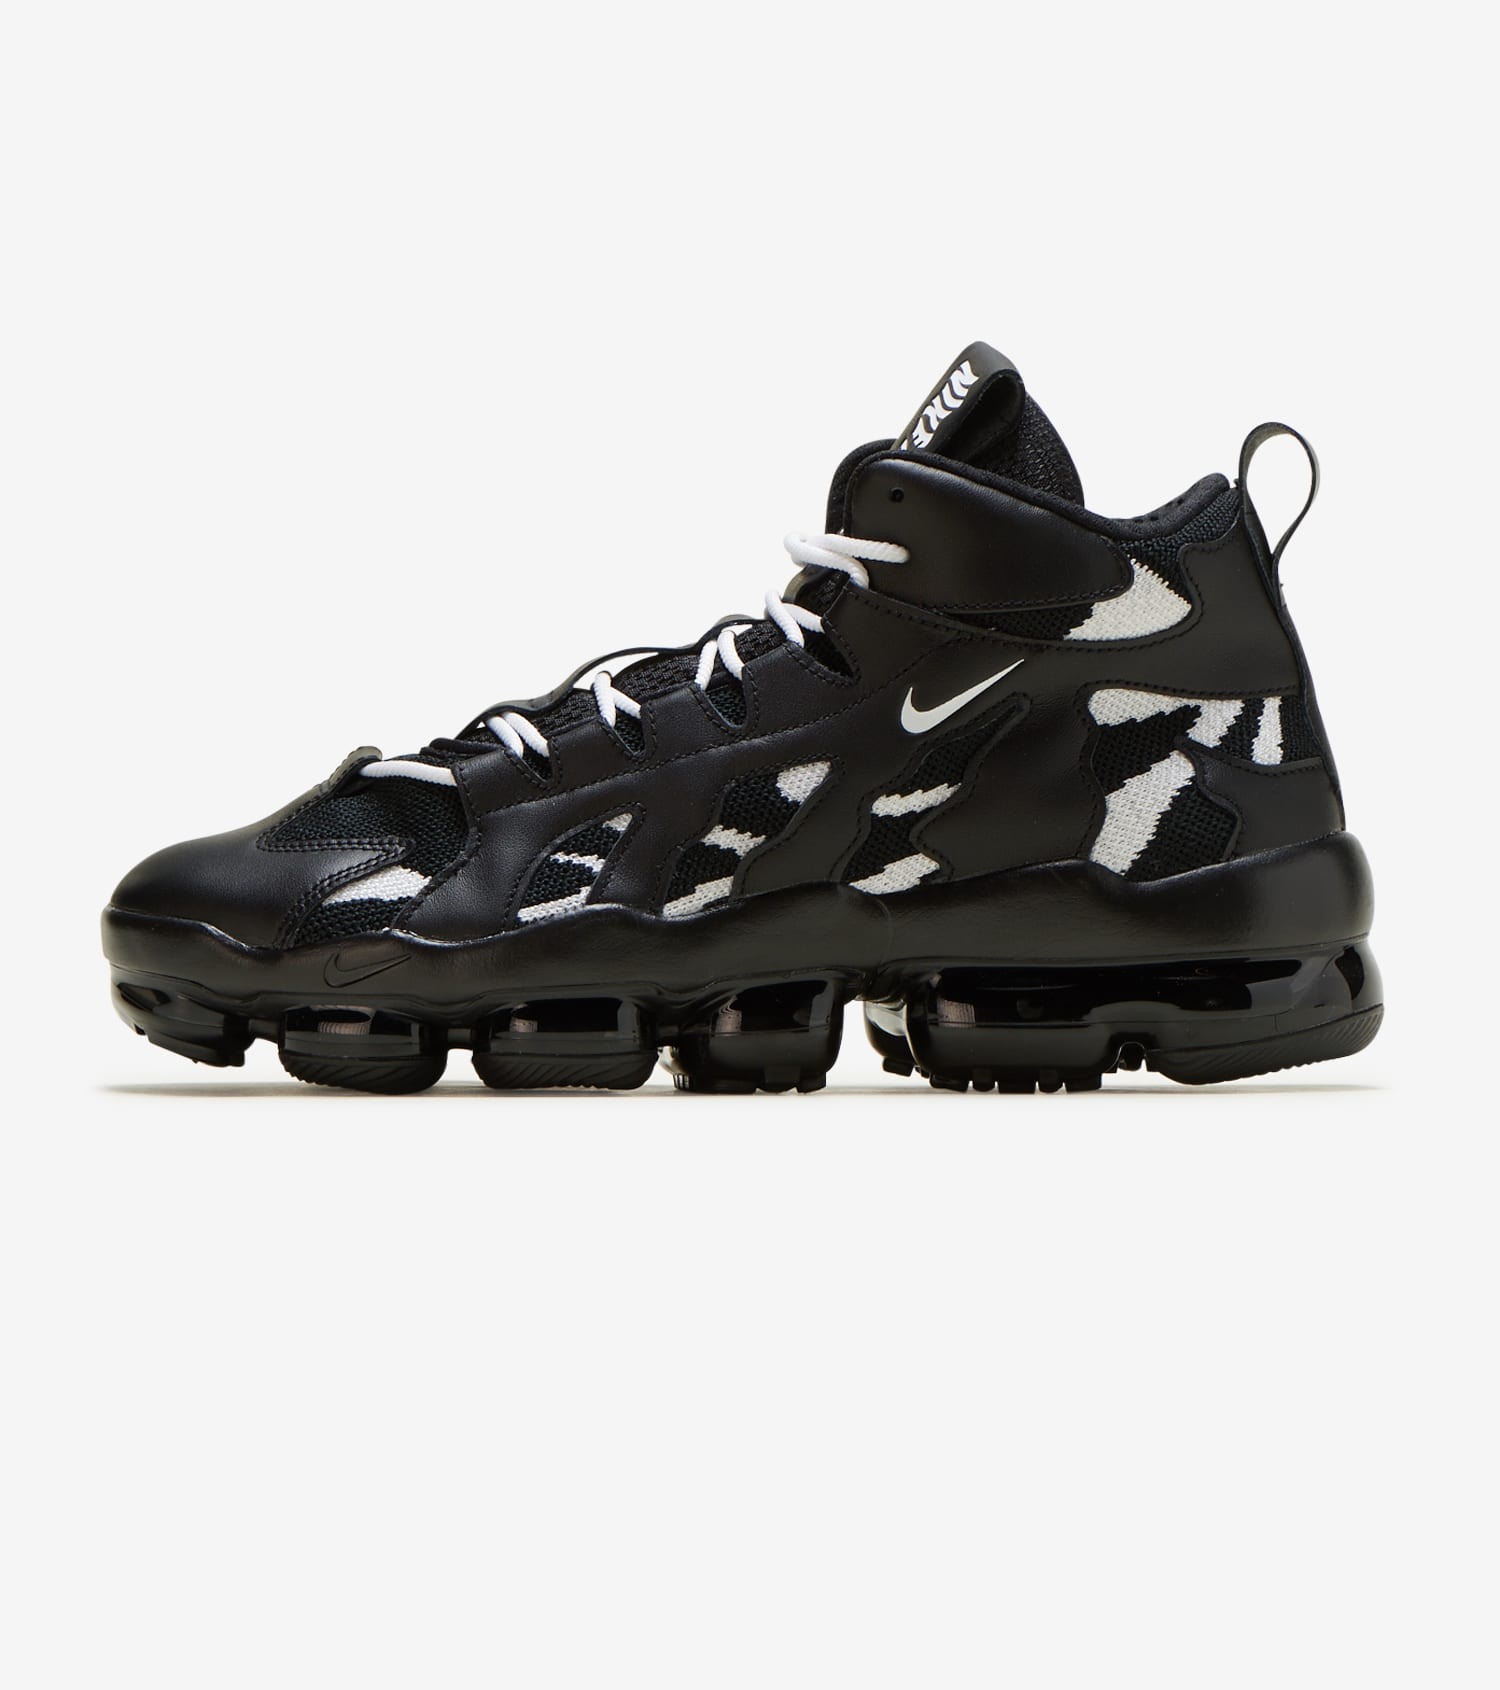 big sale 243a3 ea5d1 Vapormax Gliese